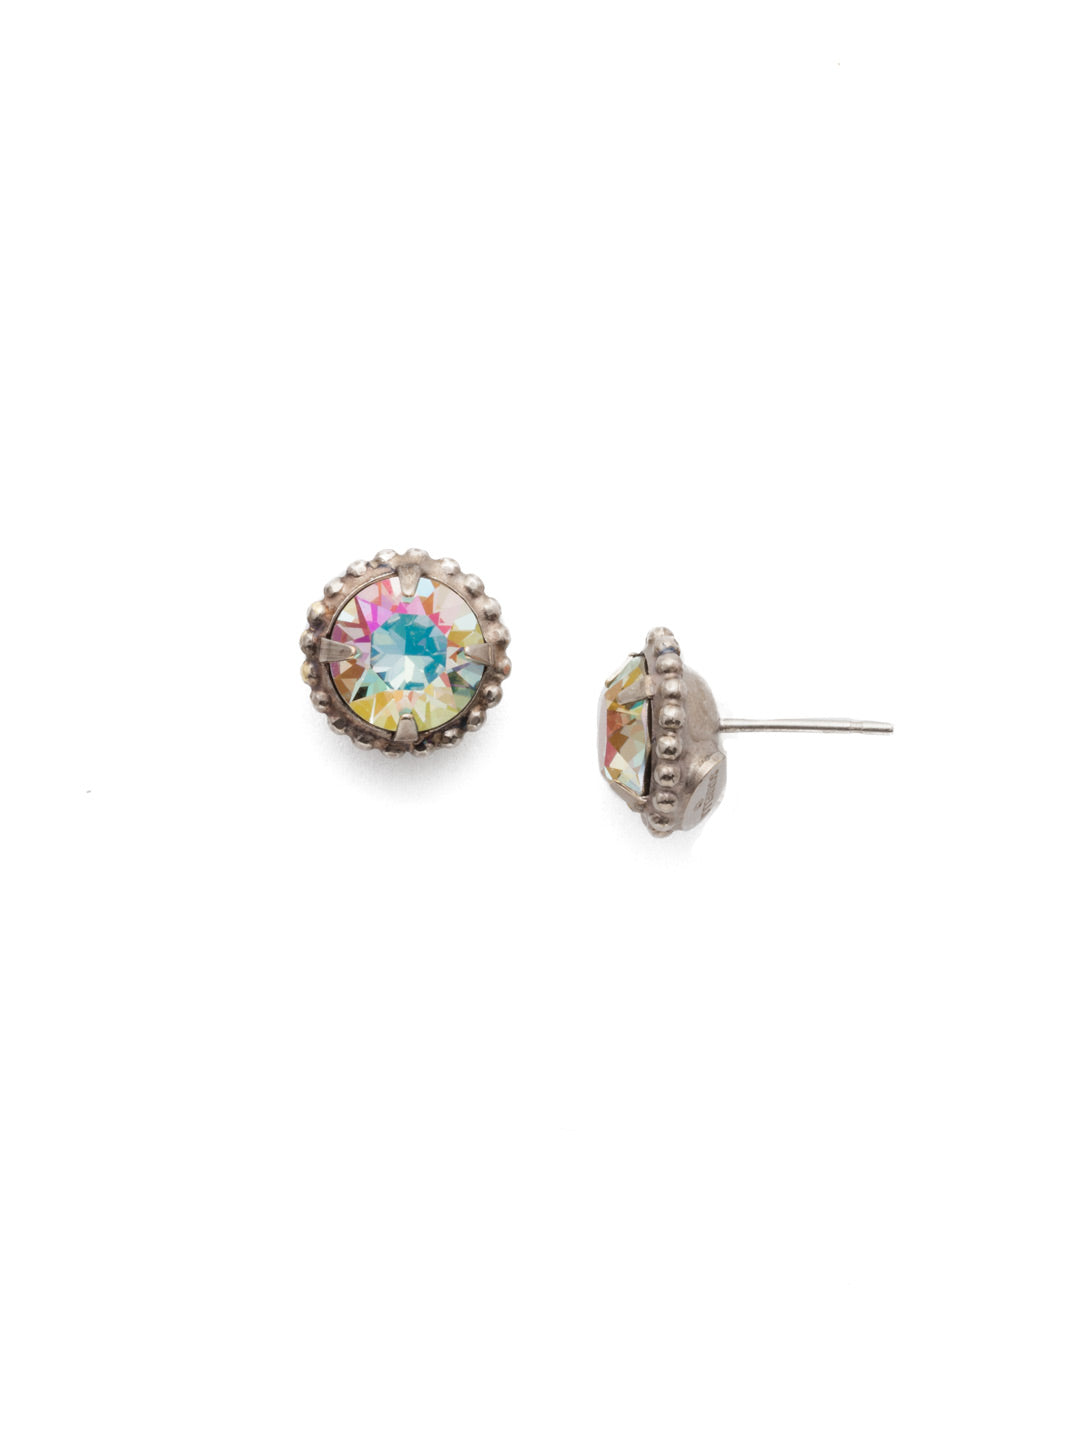 Simplicity Stud Earrings - EBY38ASCRE